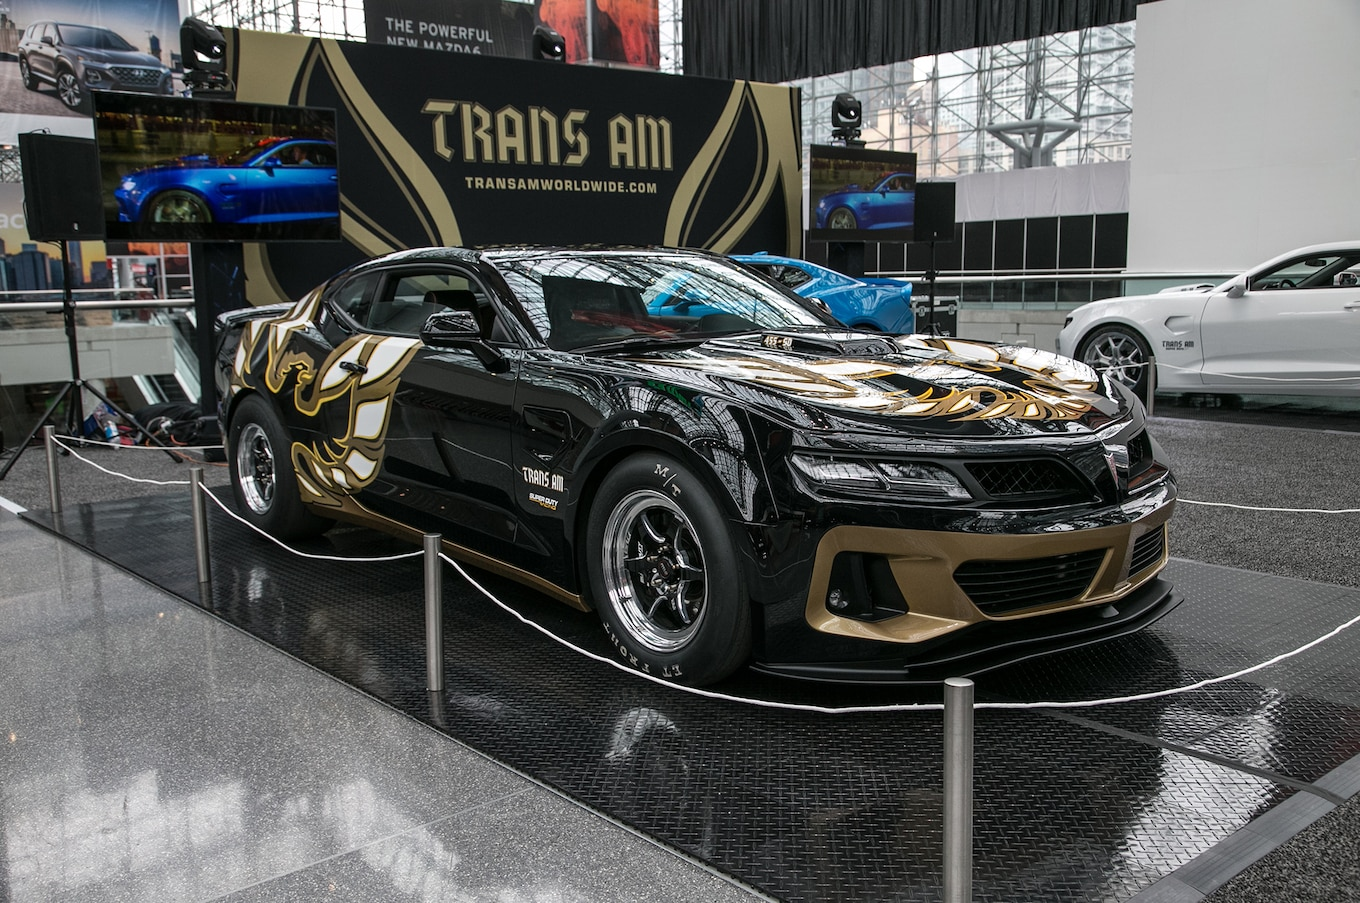 65 Best 2019 Pontiac Firebird Exterior and Interior